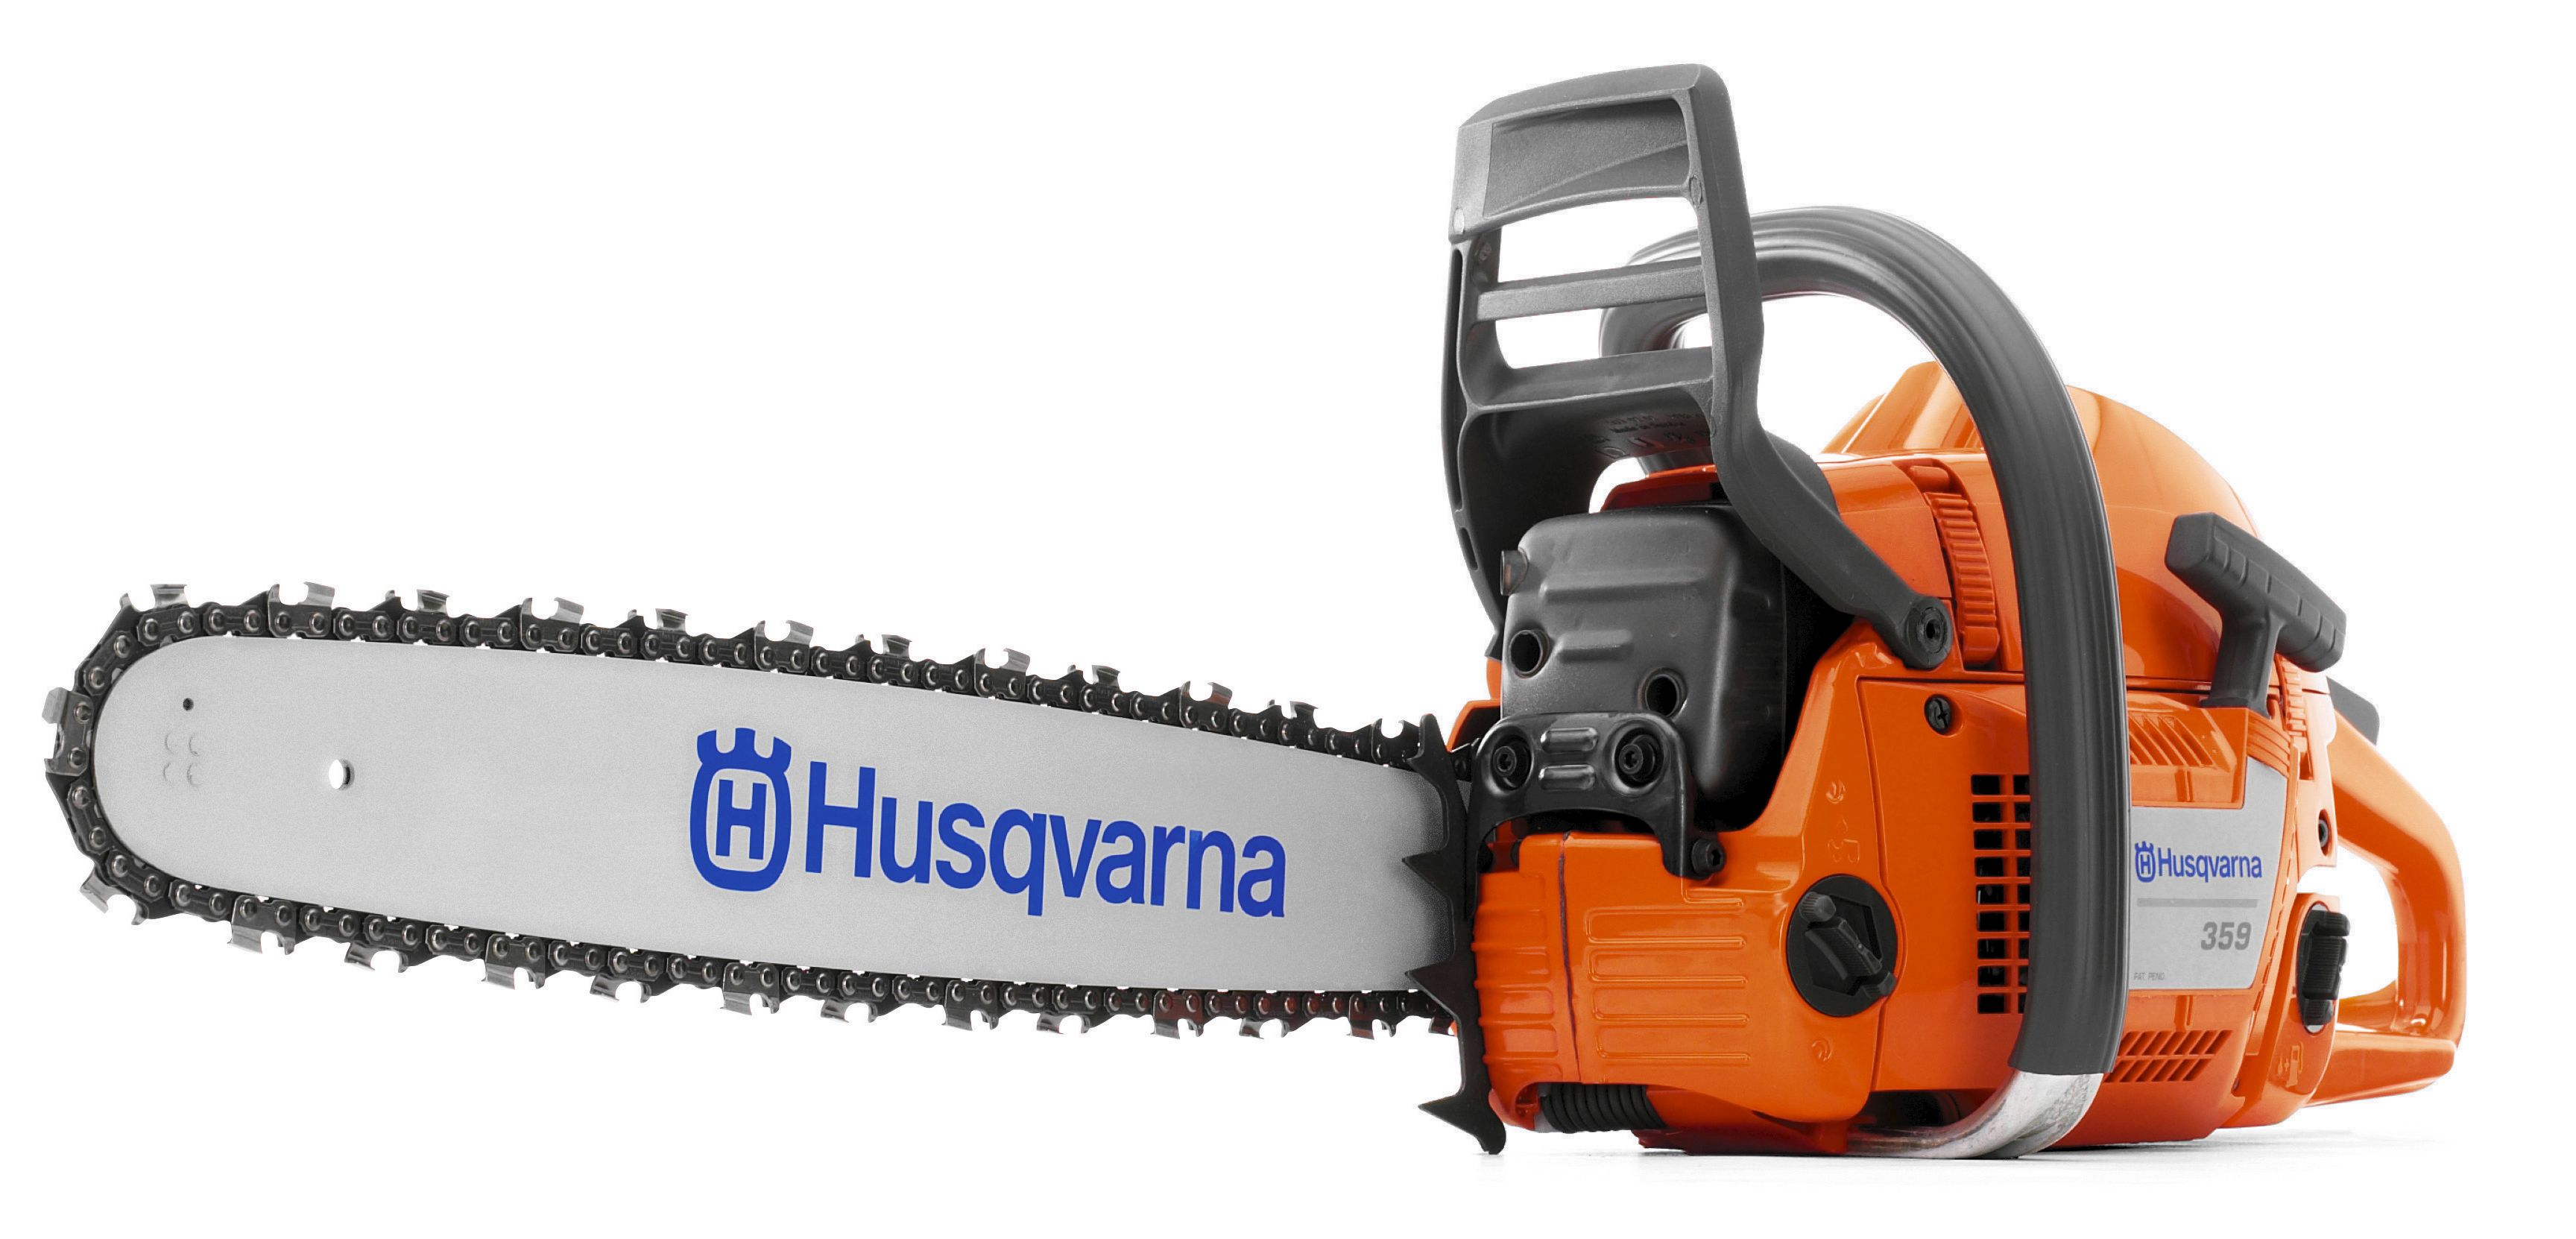 hsuqvarna 359 - husqvarna aftermarket parts - husqvarna replacement parts